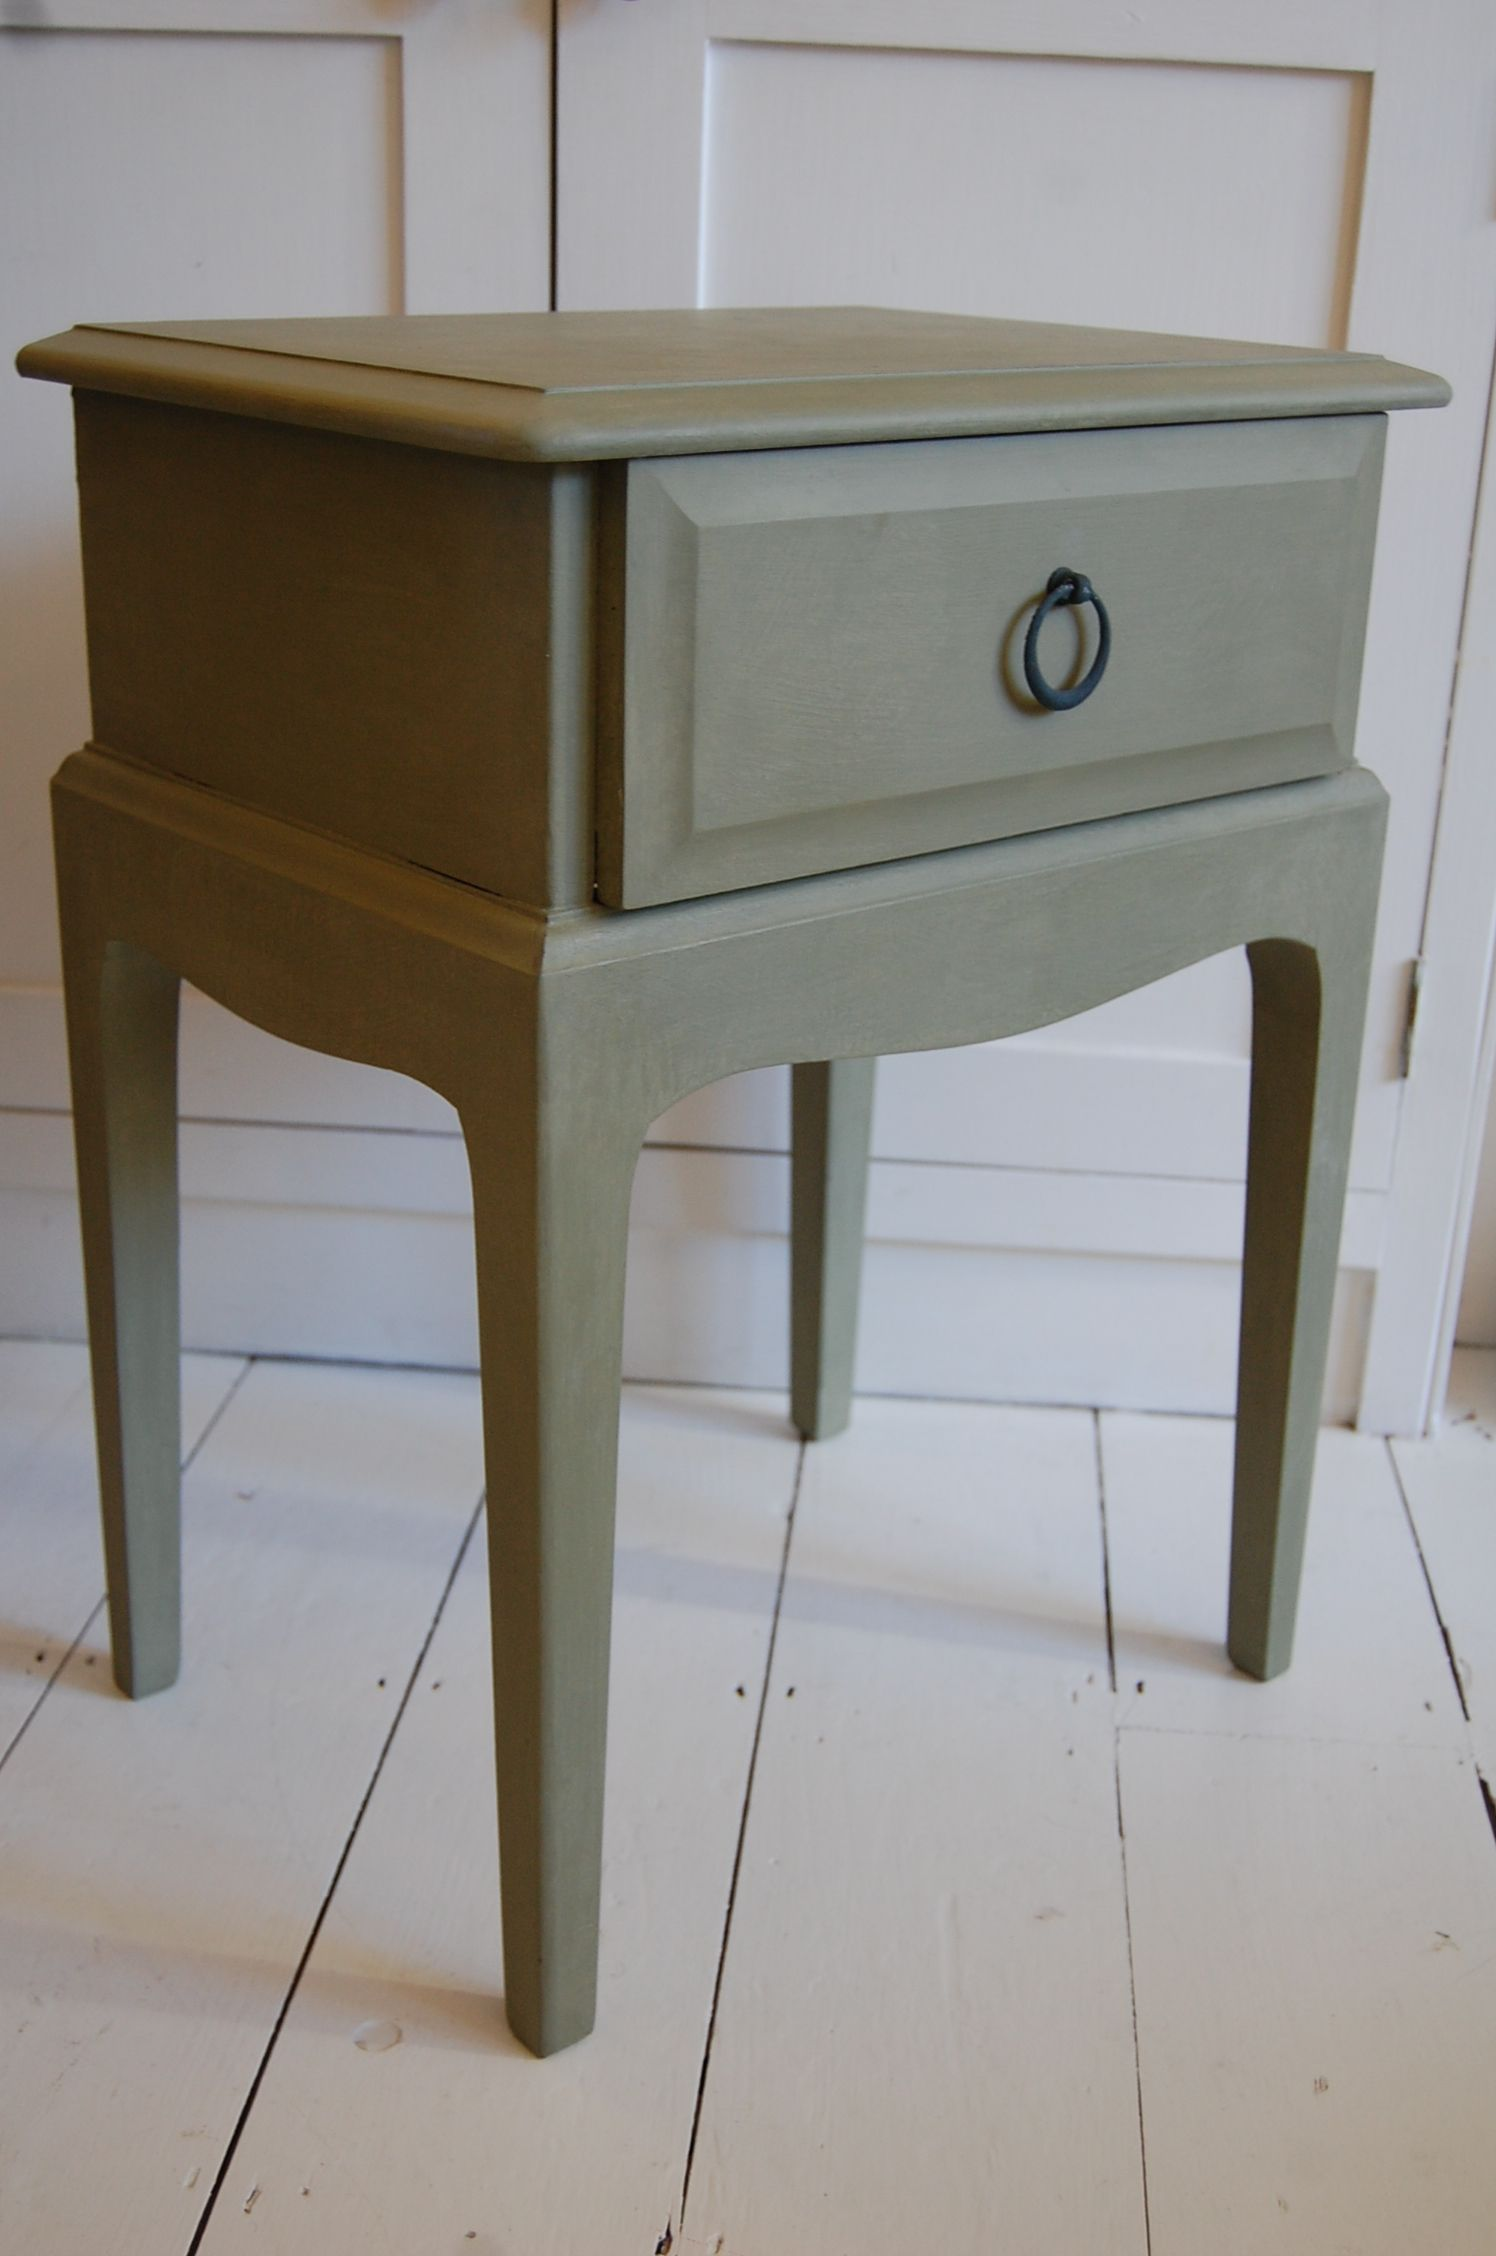 Painted Stag Furniture Google Search Stag Furniture Furniture Repurposed Furniture